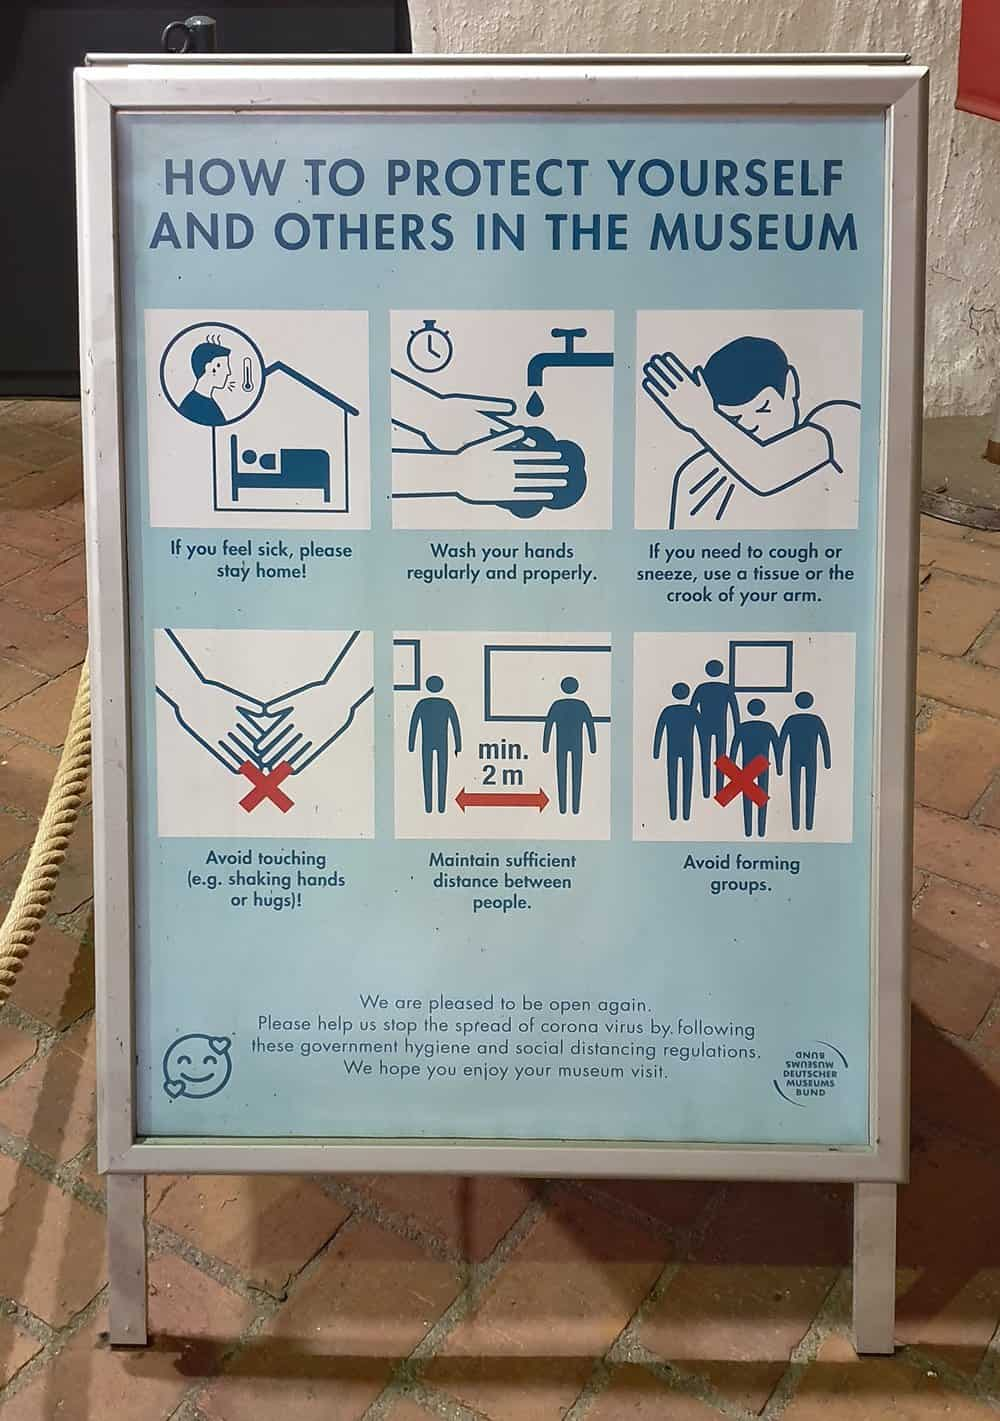 A public safety notice at the Spandau Citadel in Berlin, Germany.